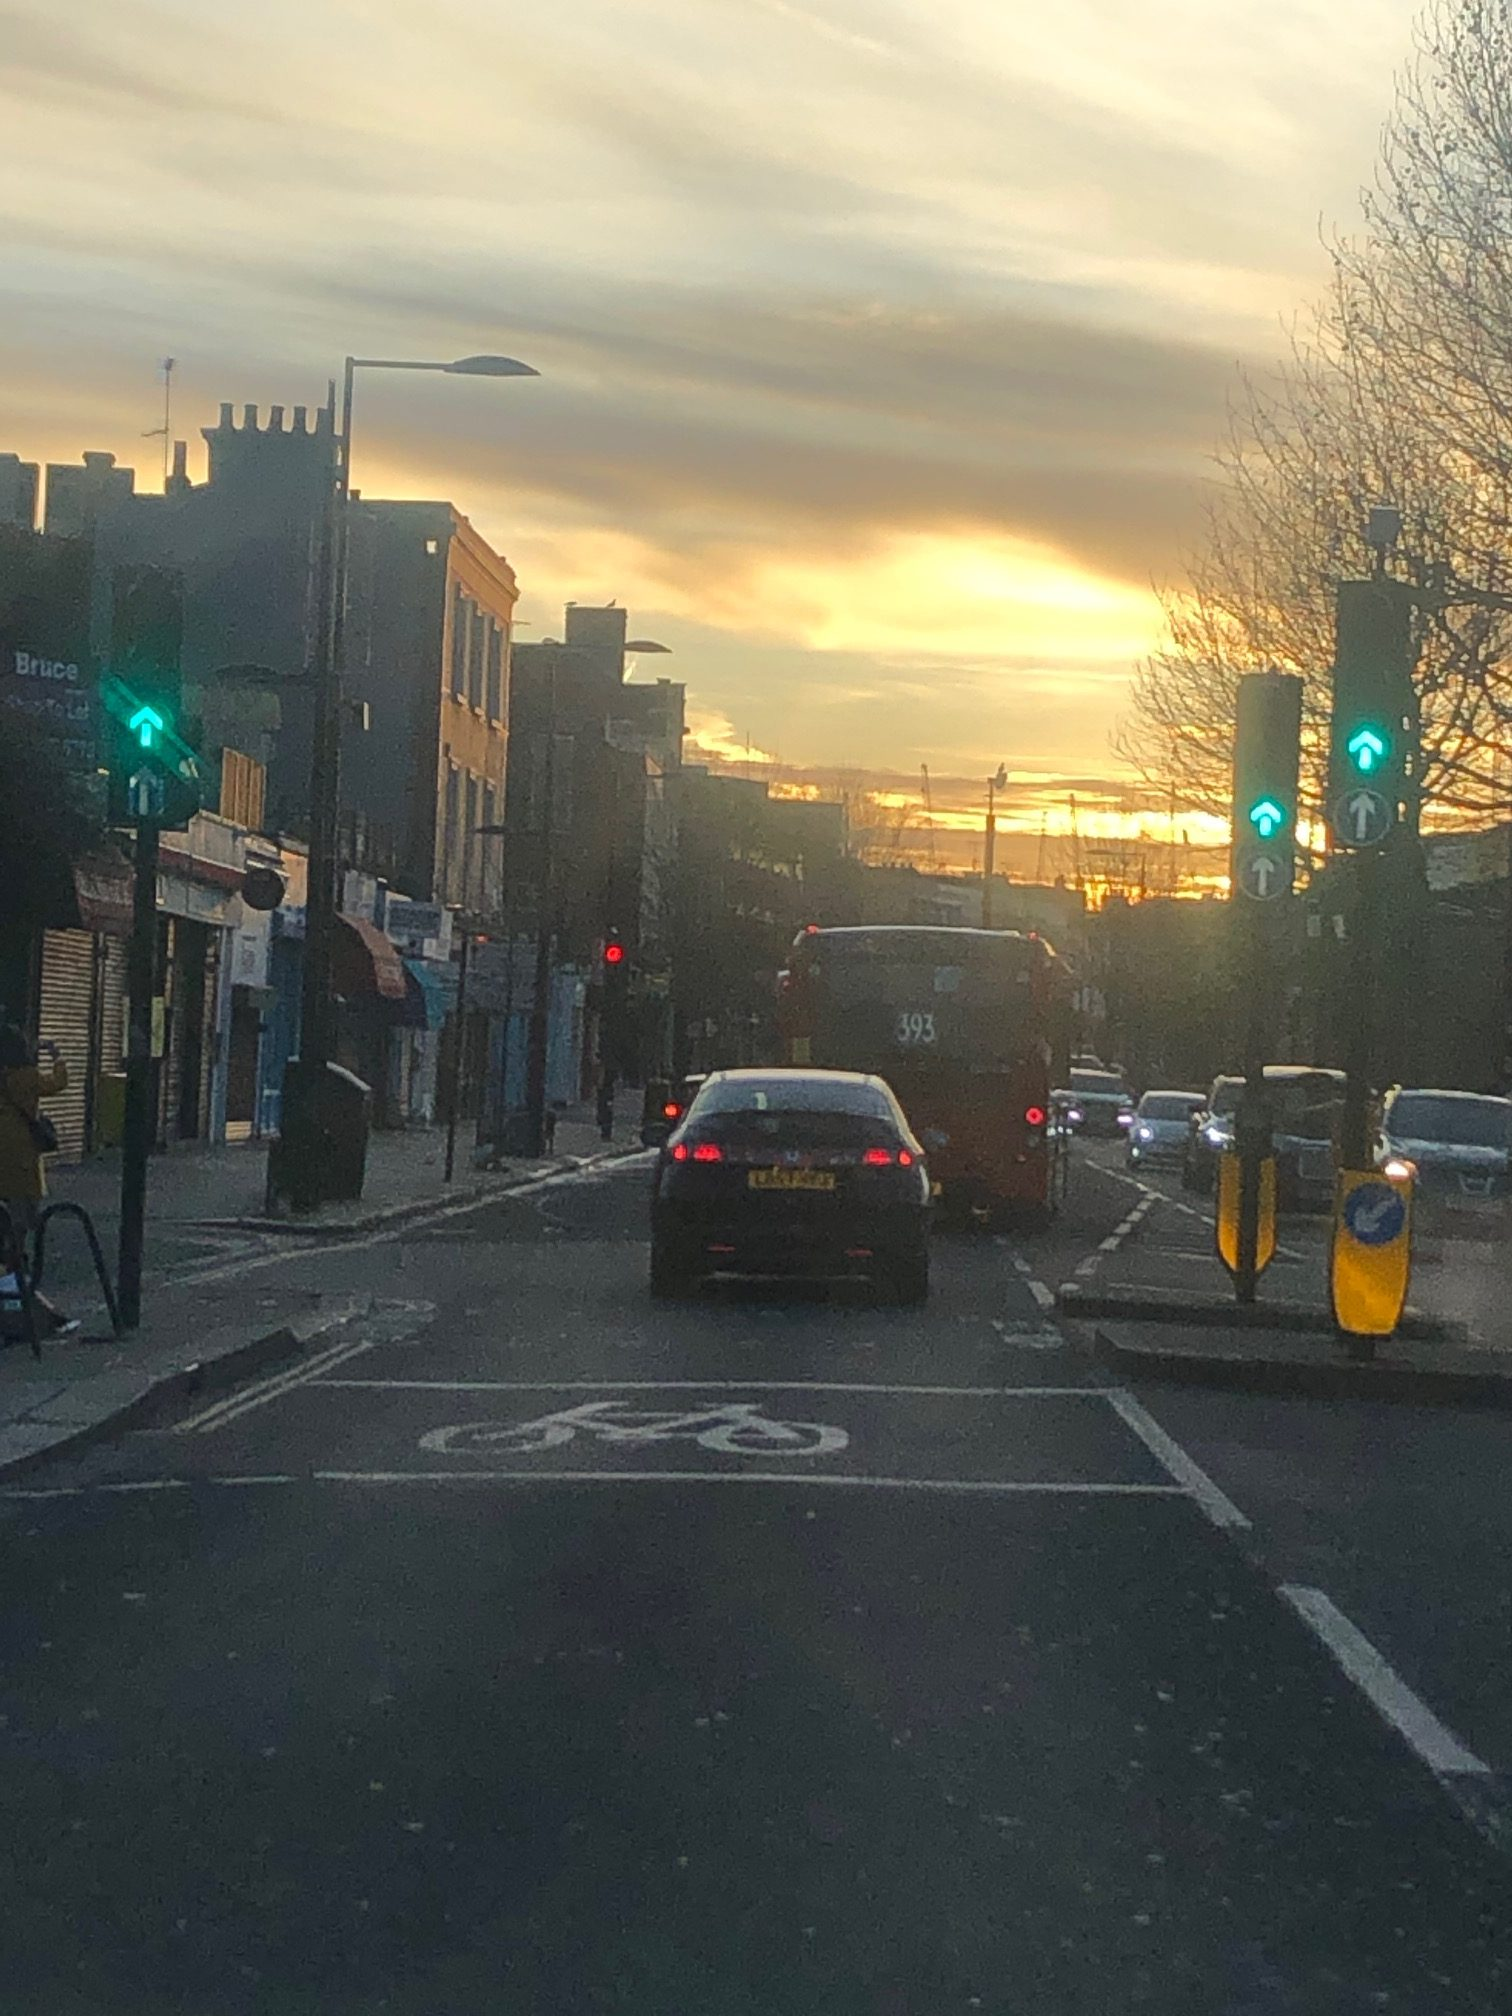 Sunrise in Camden, London